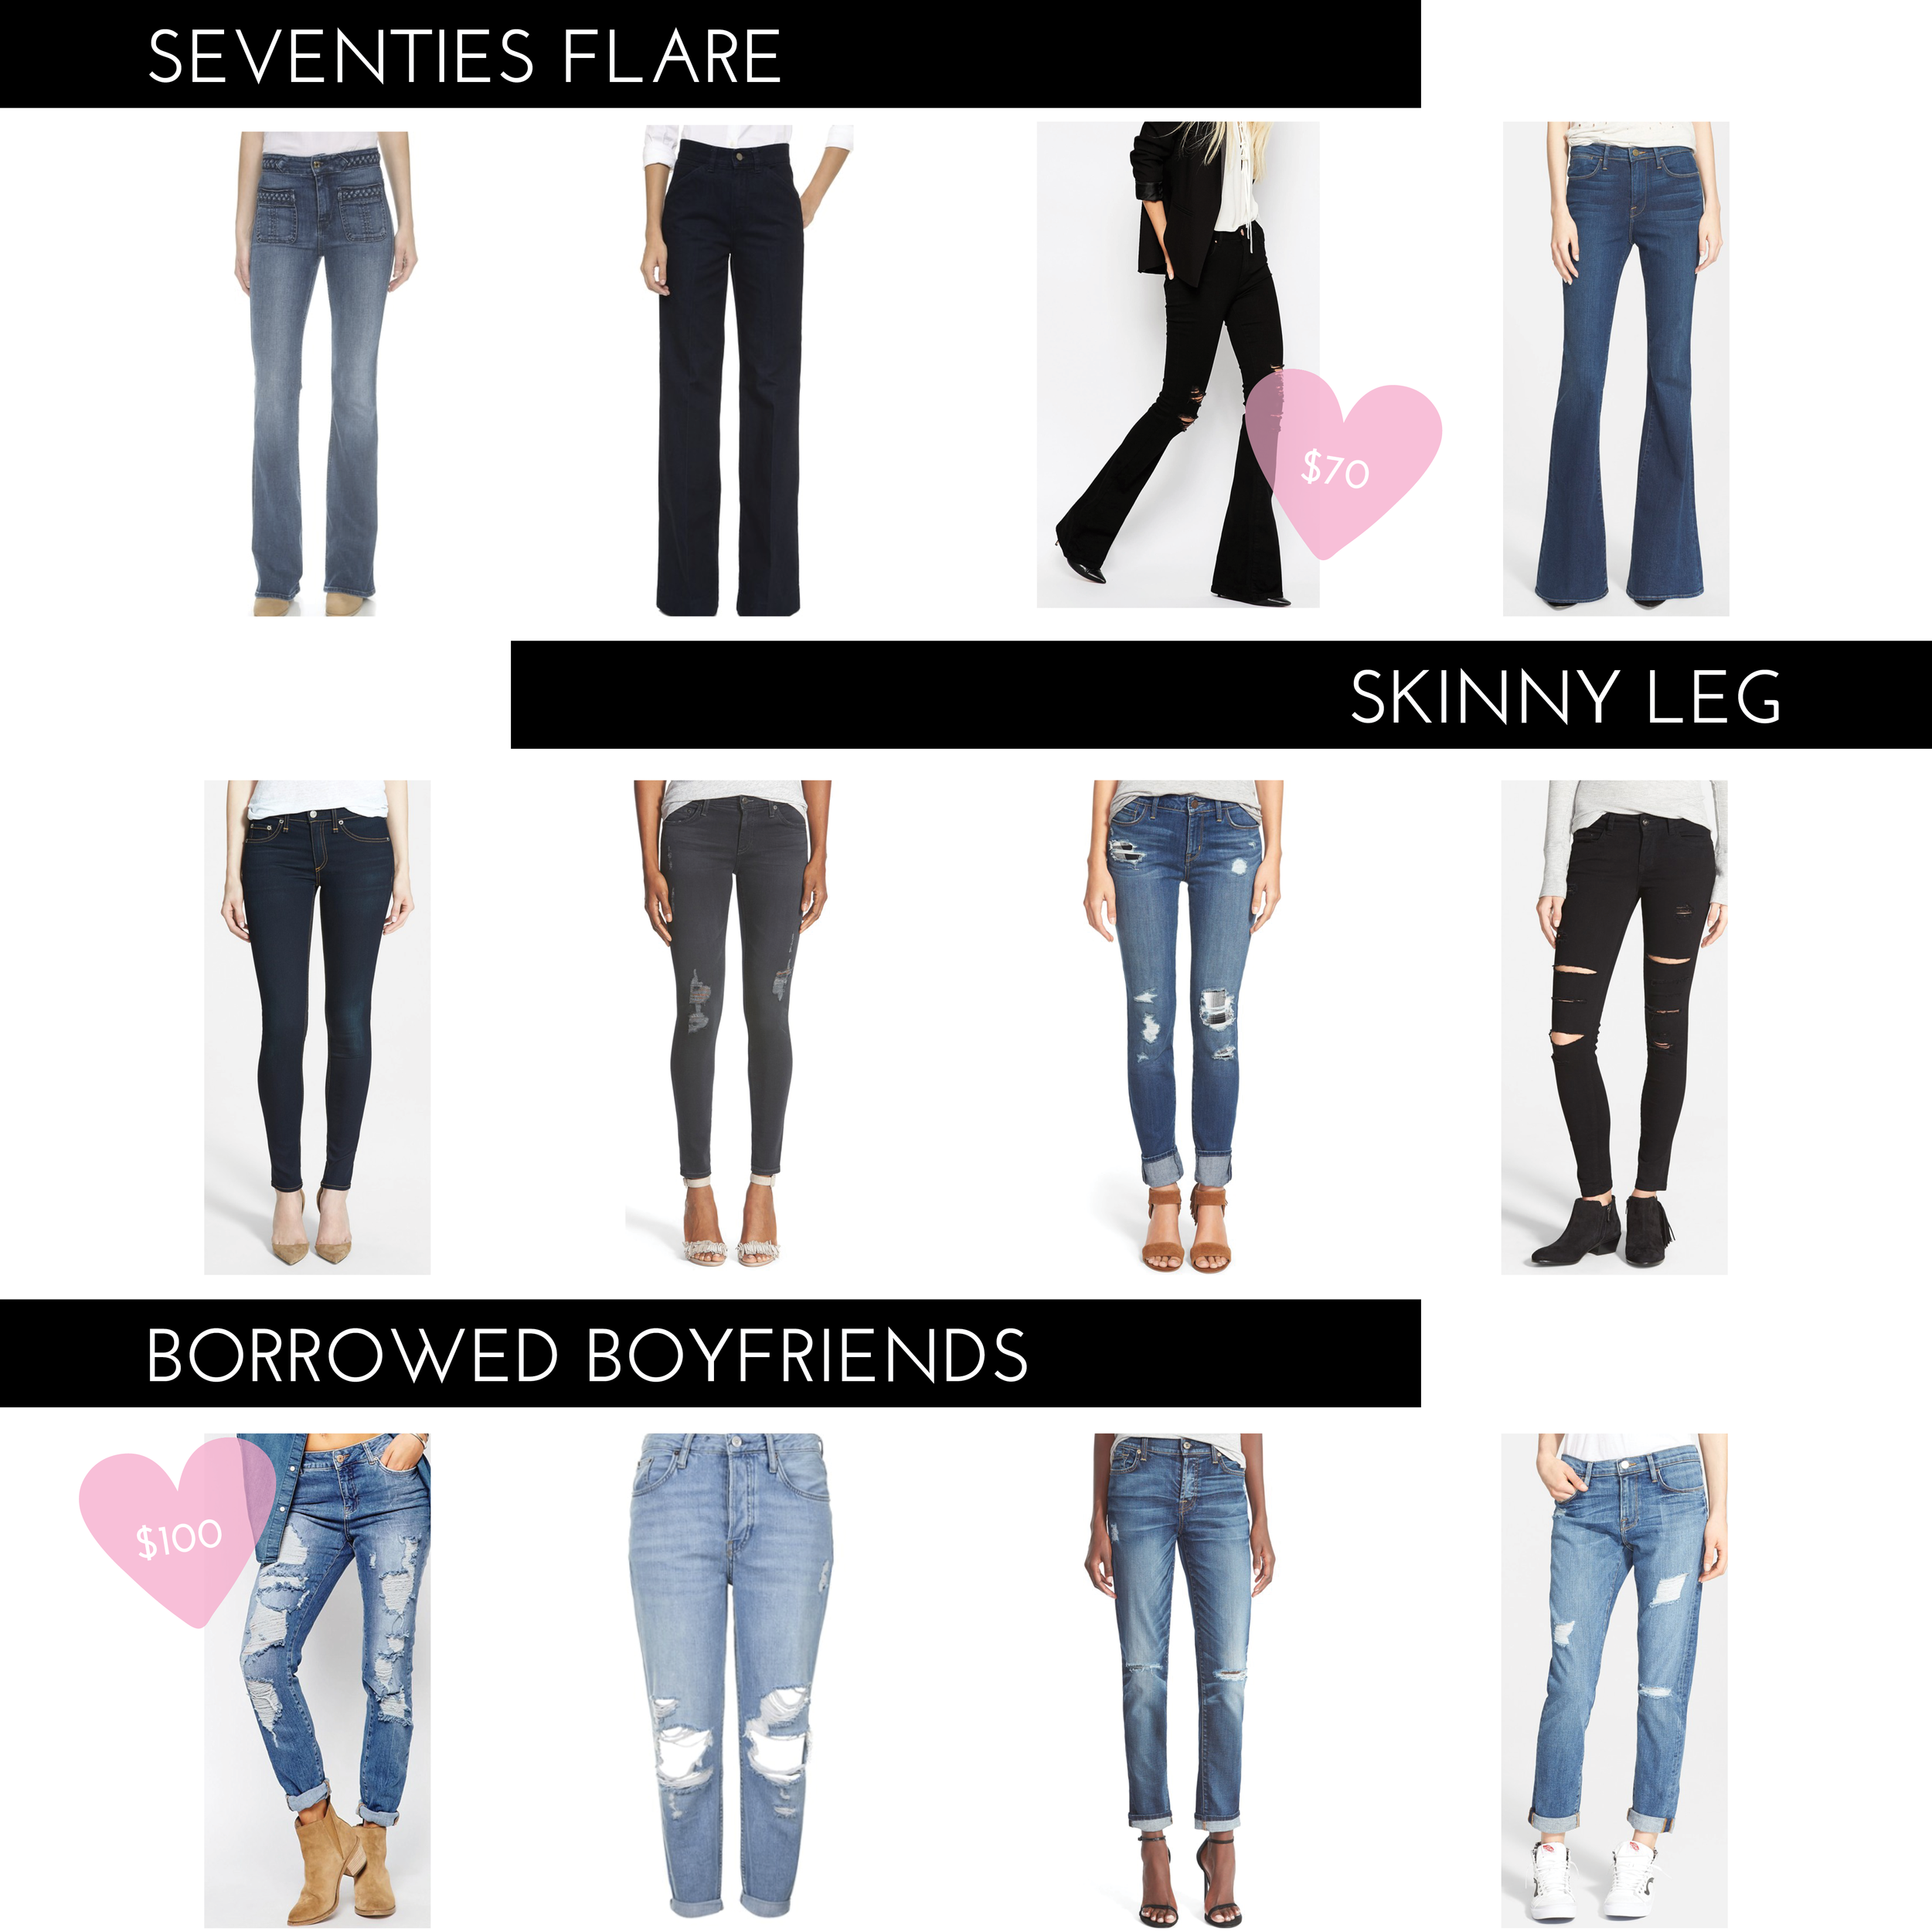 SHOP THE LOOK BELOW (LEFT TO RIGHT):    SEVENTIES FLARE:   ONE   |   TWO   |   THREE   |   FOUR   |SKINNY LEG:   ONE   |   TWO   |   THREE   |   FOUR   |BORROWED BOYFRIENDS:   ONE   |   TWO |     THREE   |   FOUR